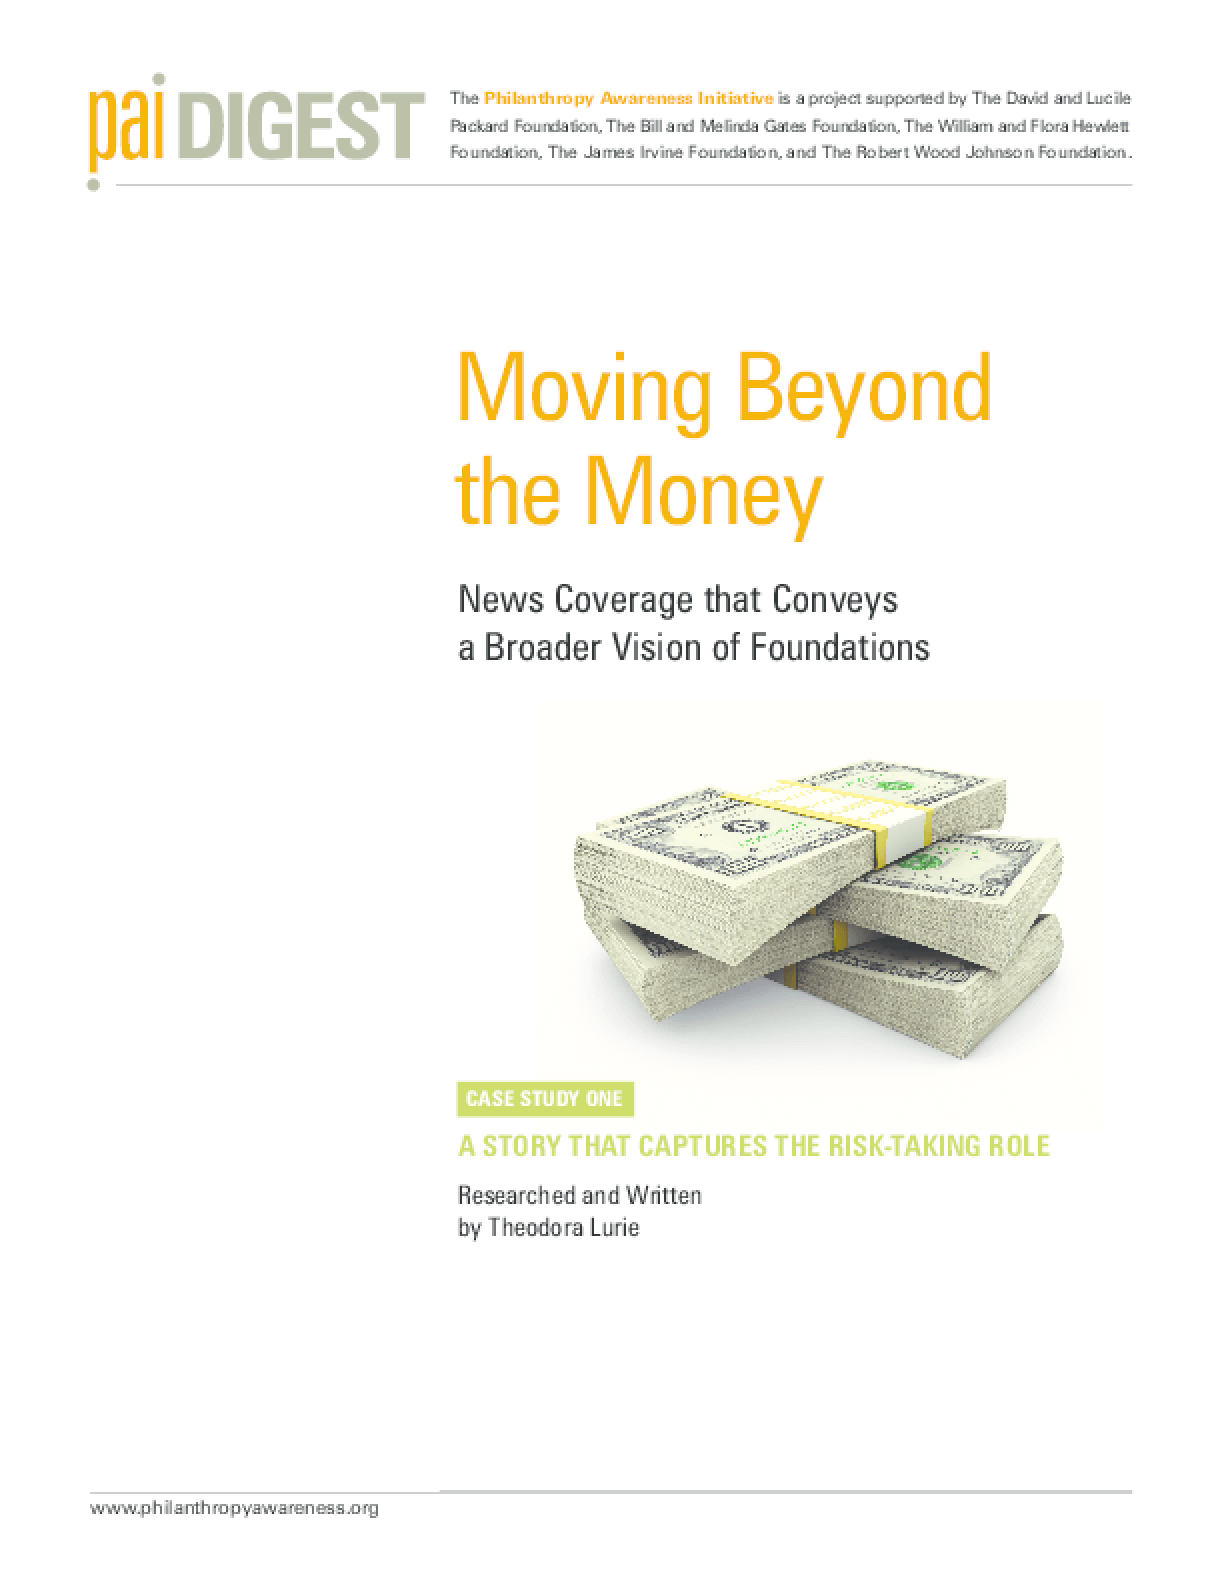 Moving Beyond the Money: News Coverage That Conveys a Broader Vision of Foundations